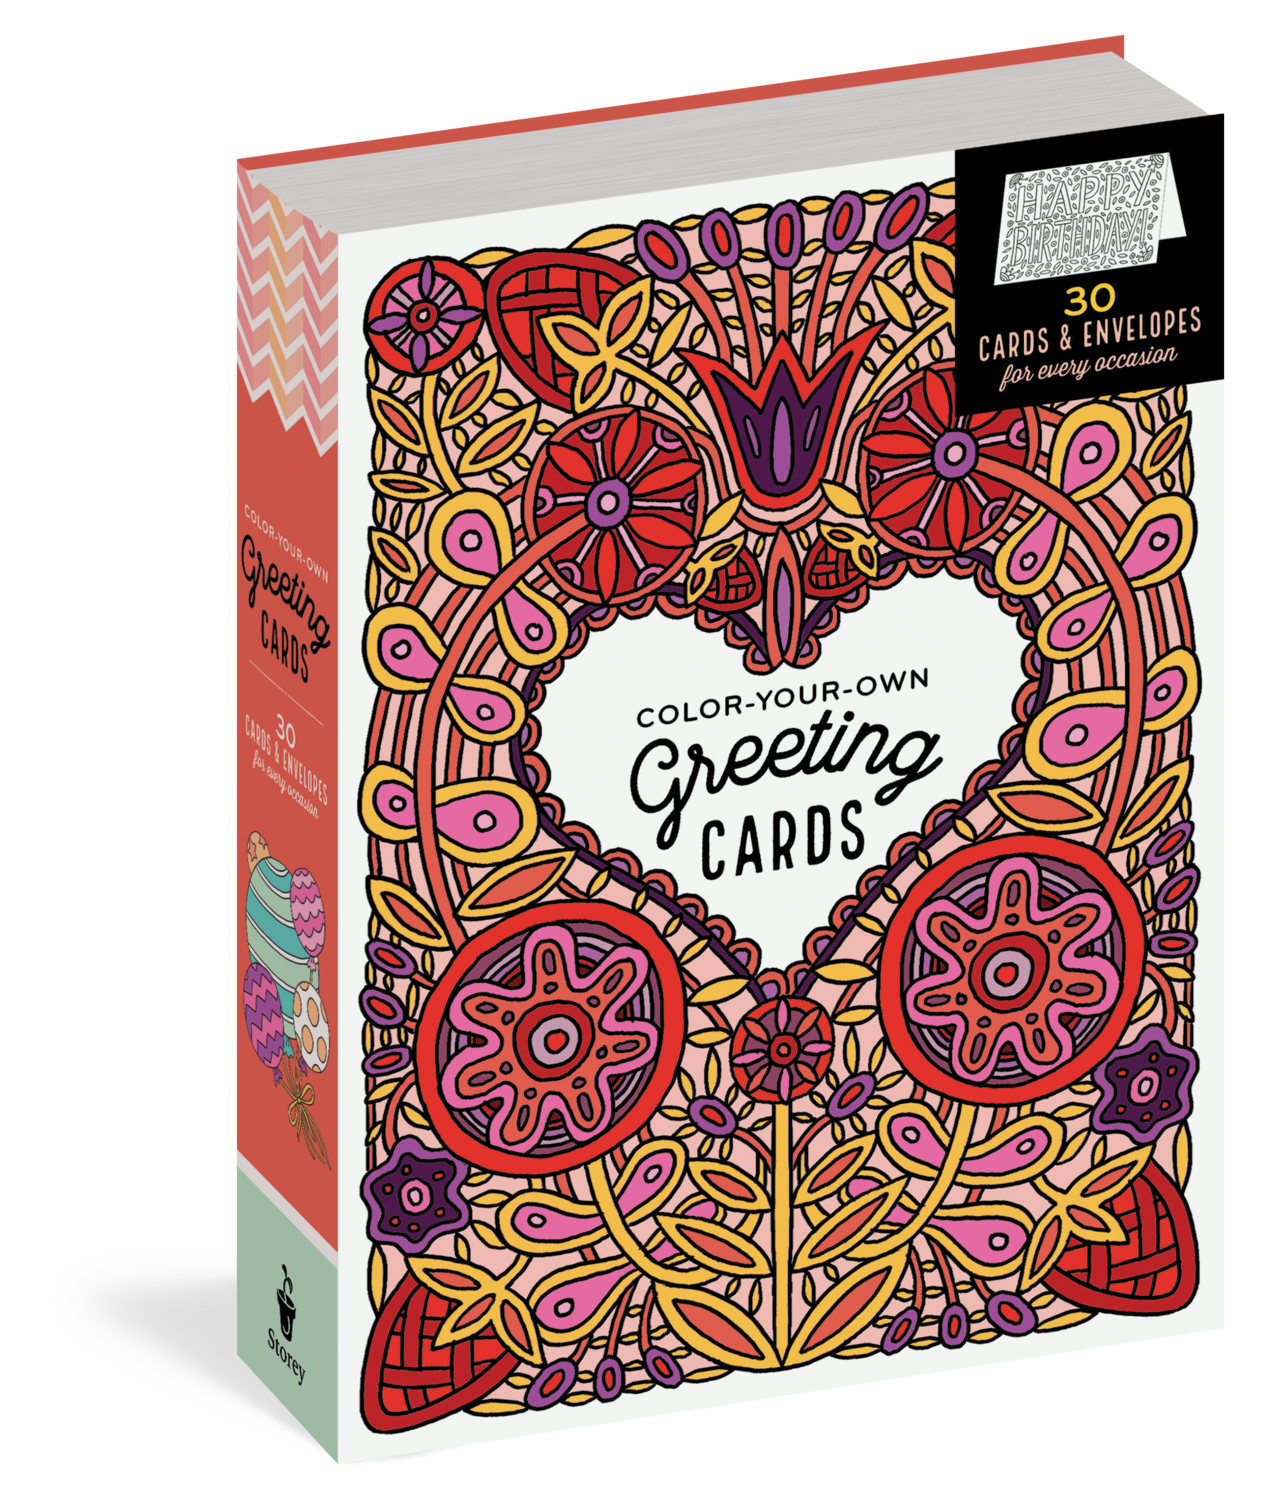 Color Your Own Greeting Cards 30 Ct